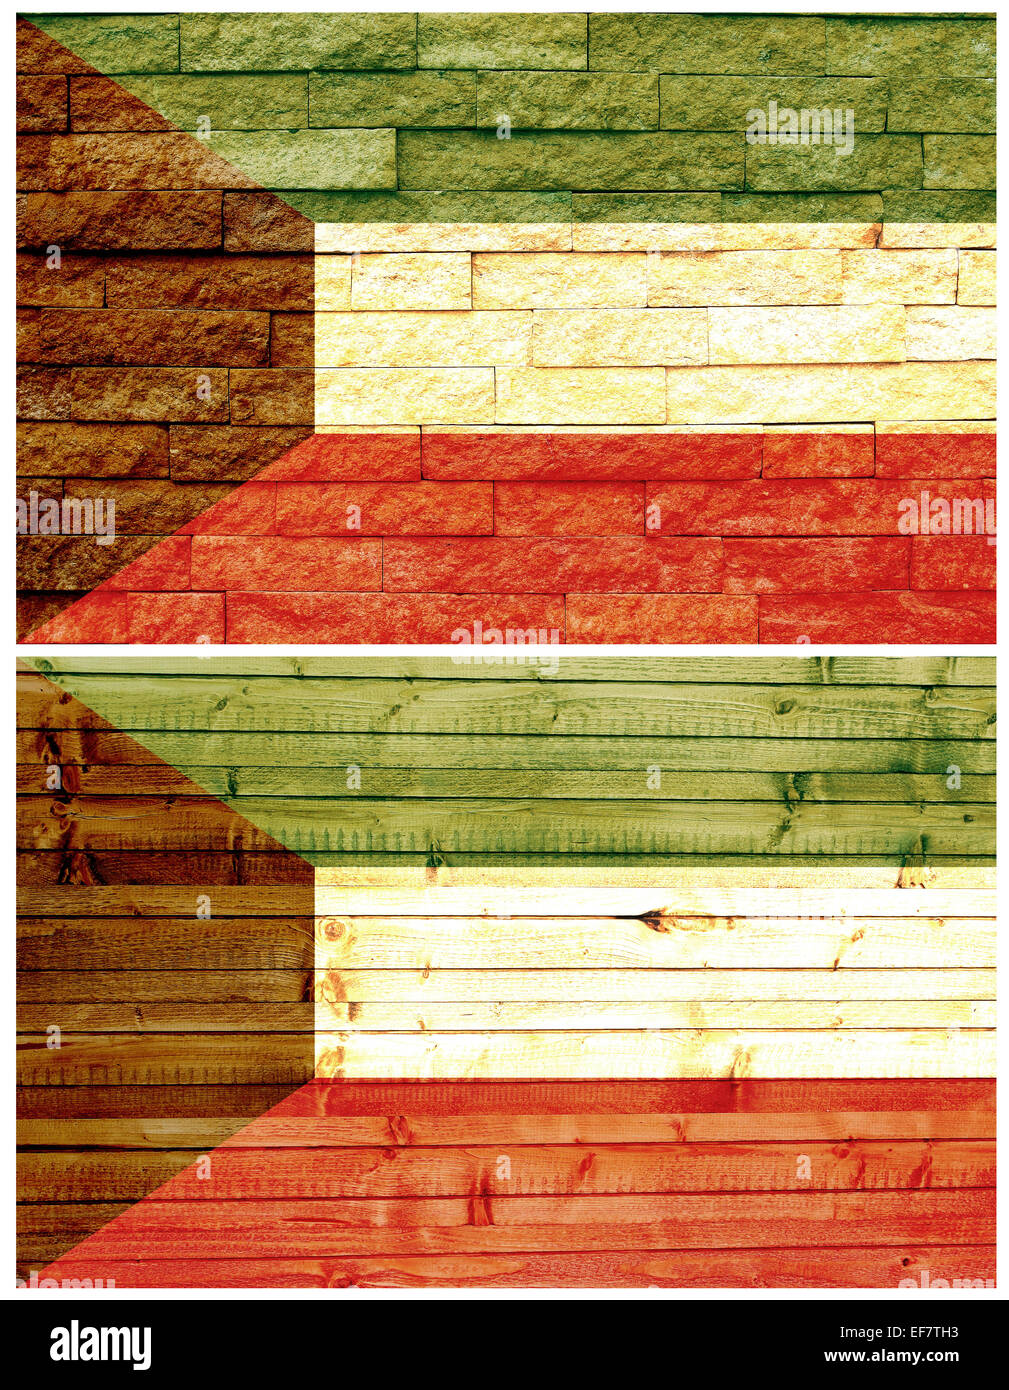 Vintage wall flag of Kuwait - Stock Image